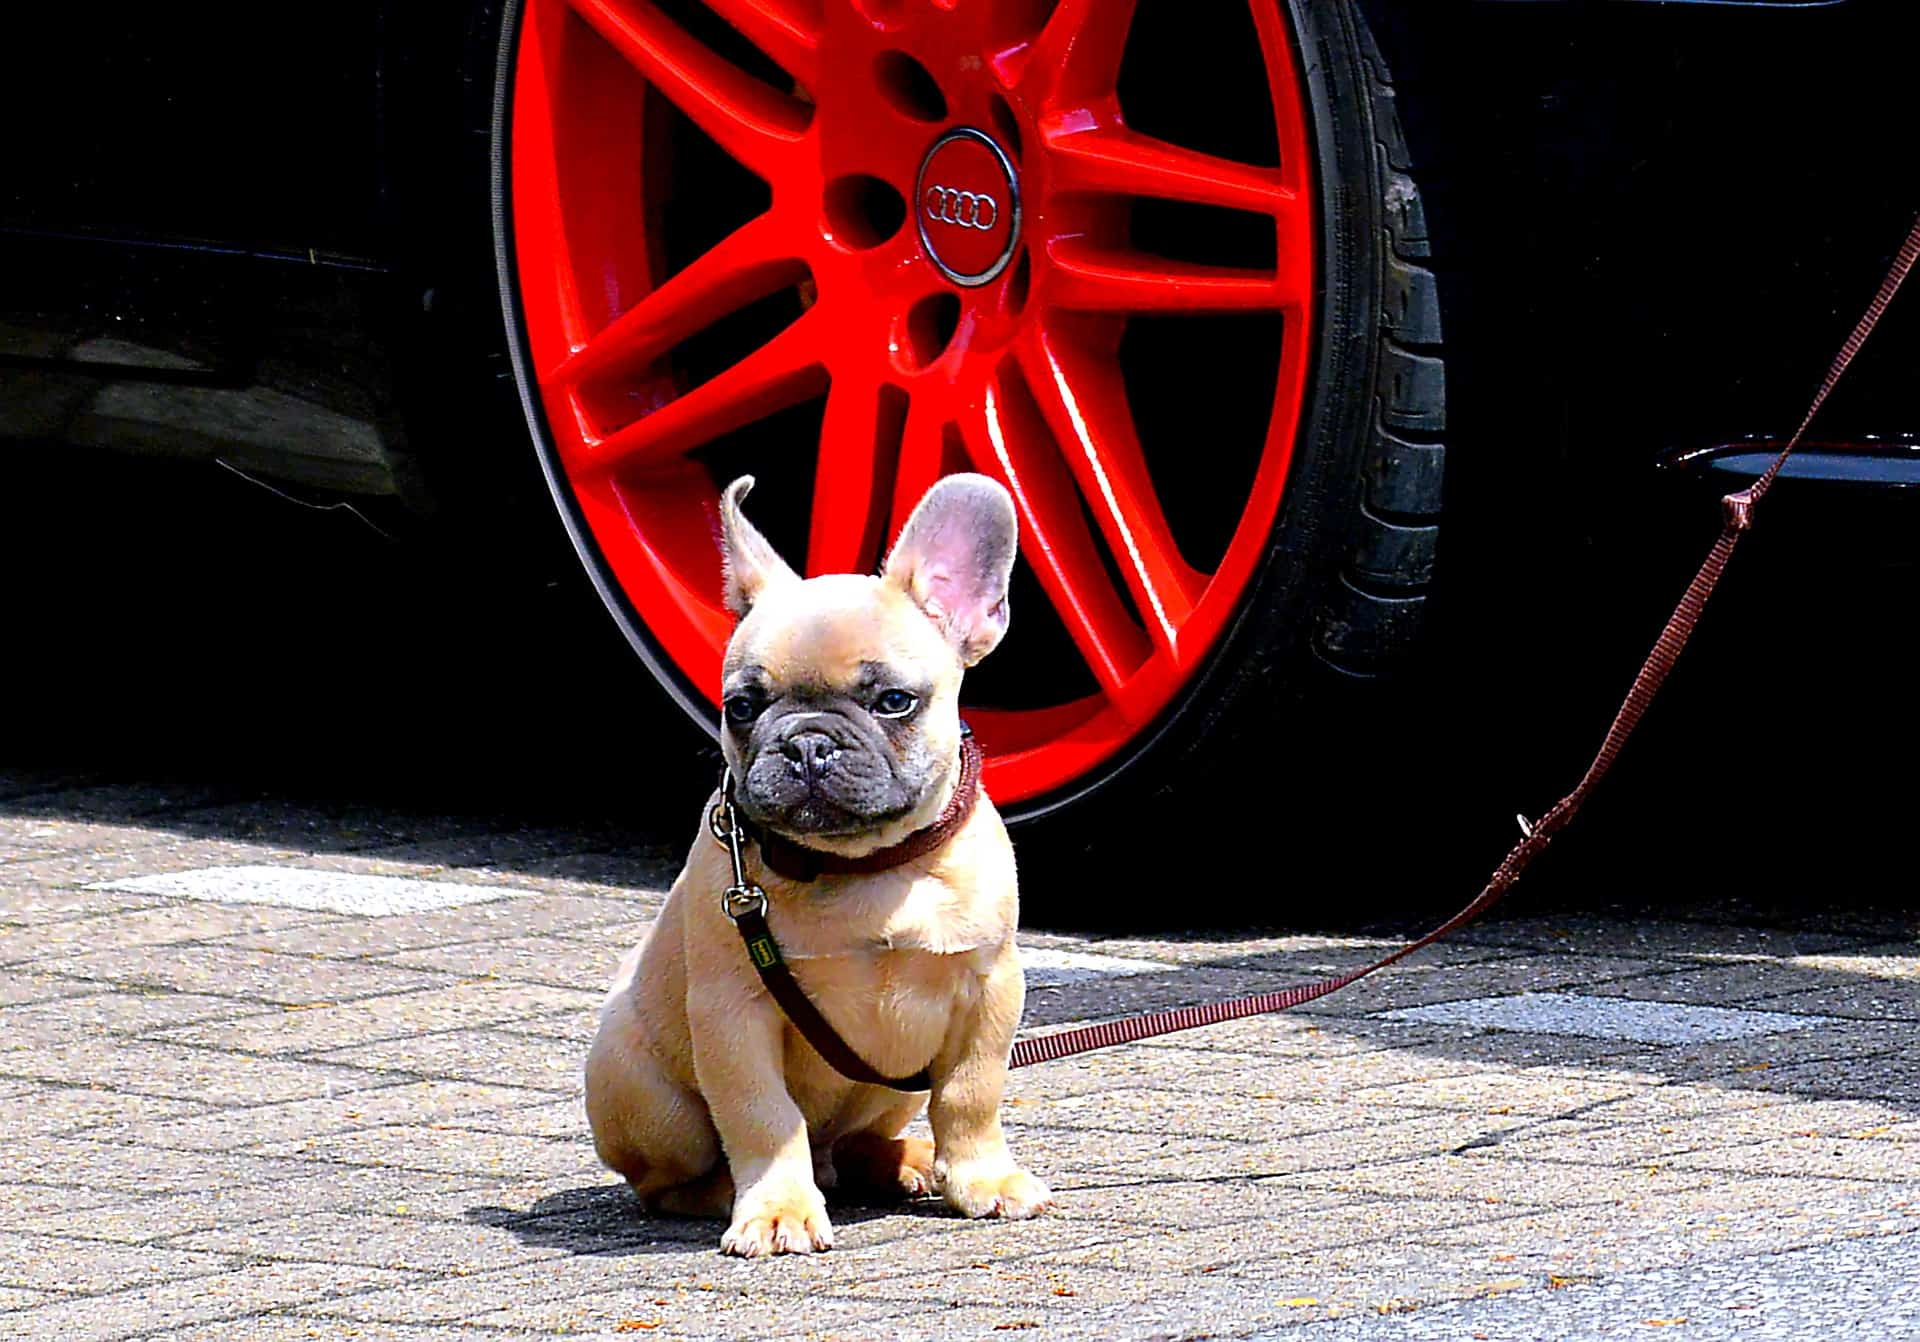 French Bulldog 2357571 1920